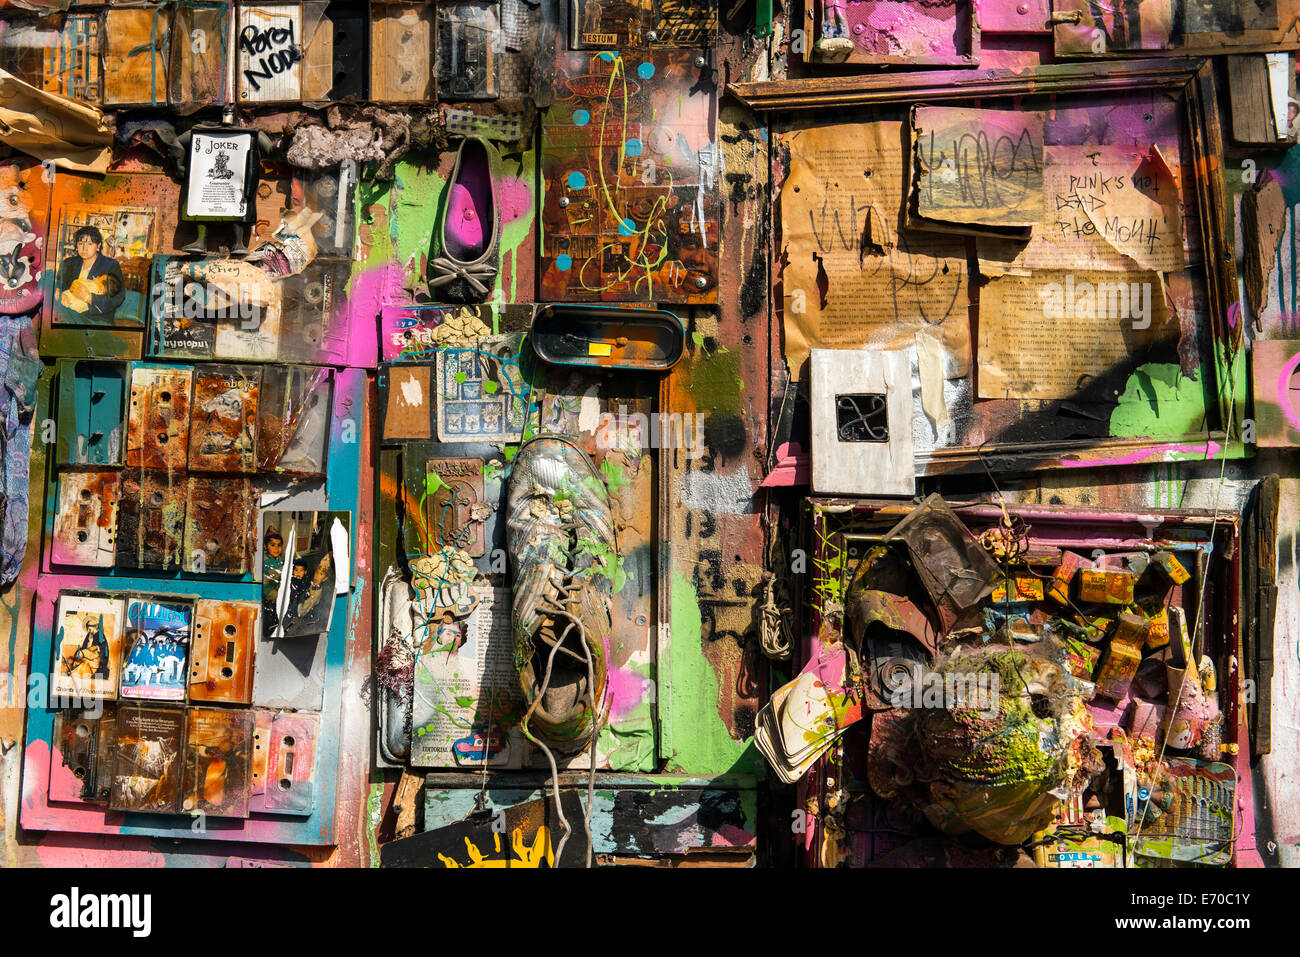 Street art Lastarria neighborhood Santiago del Chile, Chile, South America - Stock Image